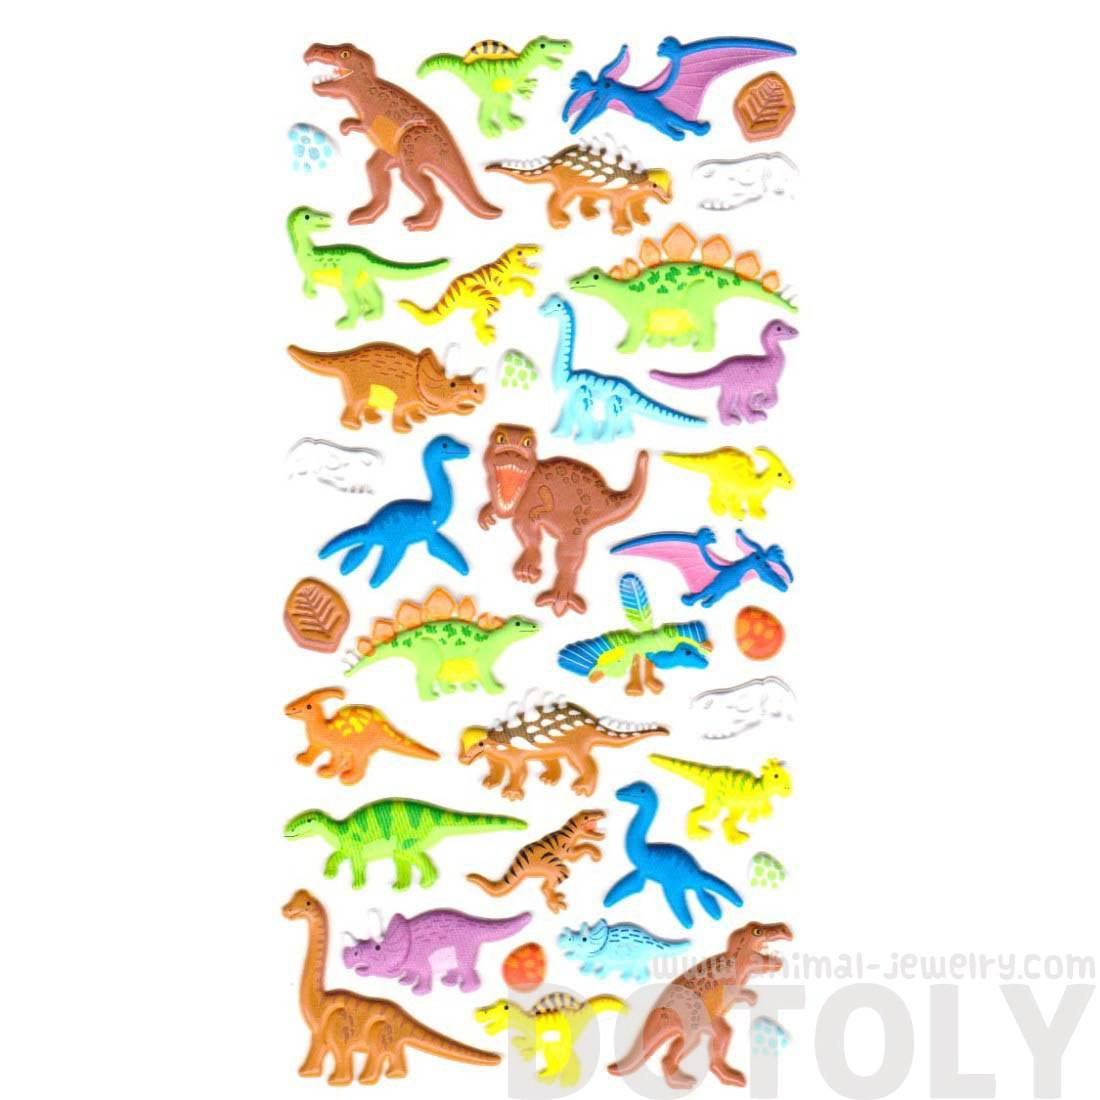 Stegosaurus Triceratops Dinosaur Shaped Puffy Stickers